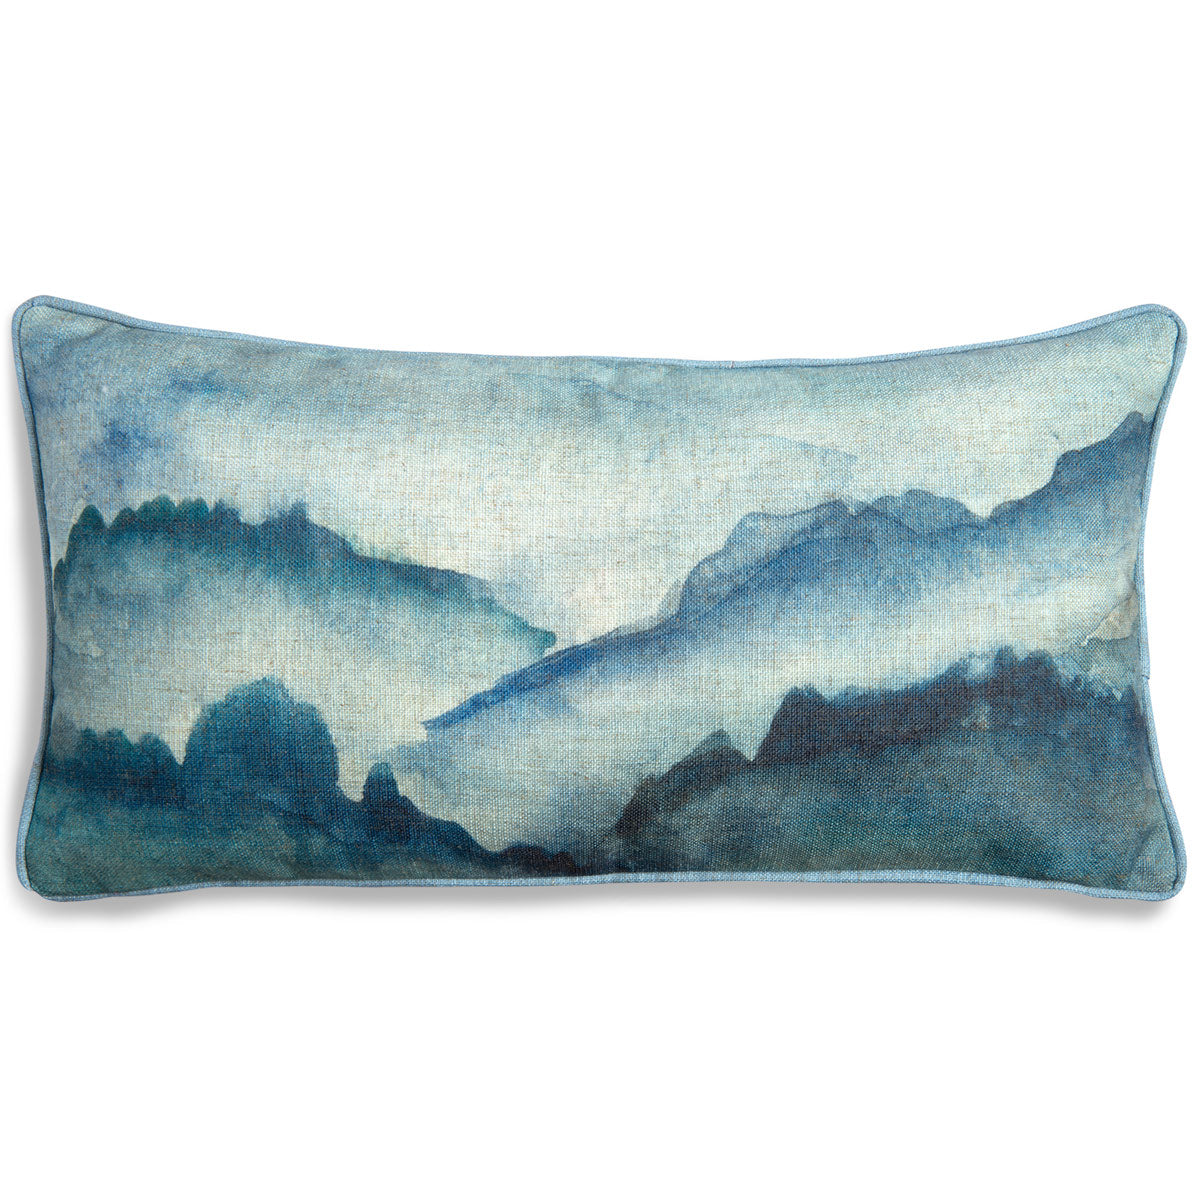 Abstract Landscape Lumbar Pillow - ModShop1.com